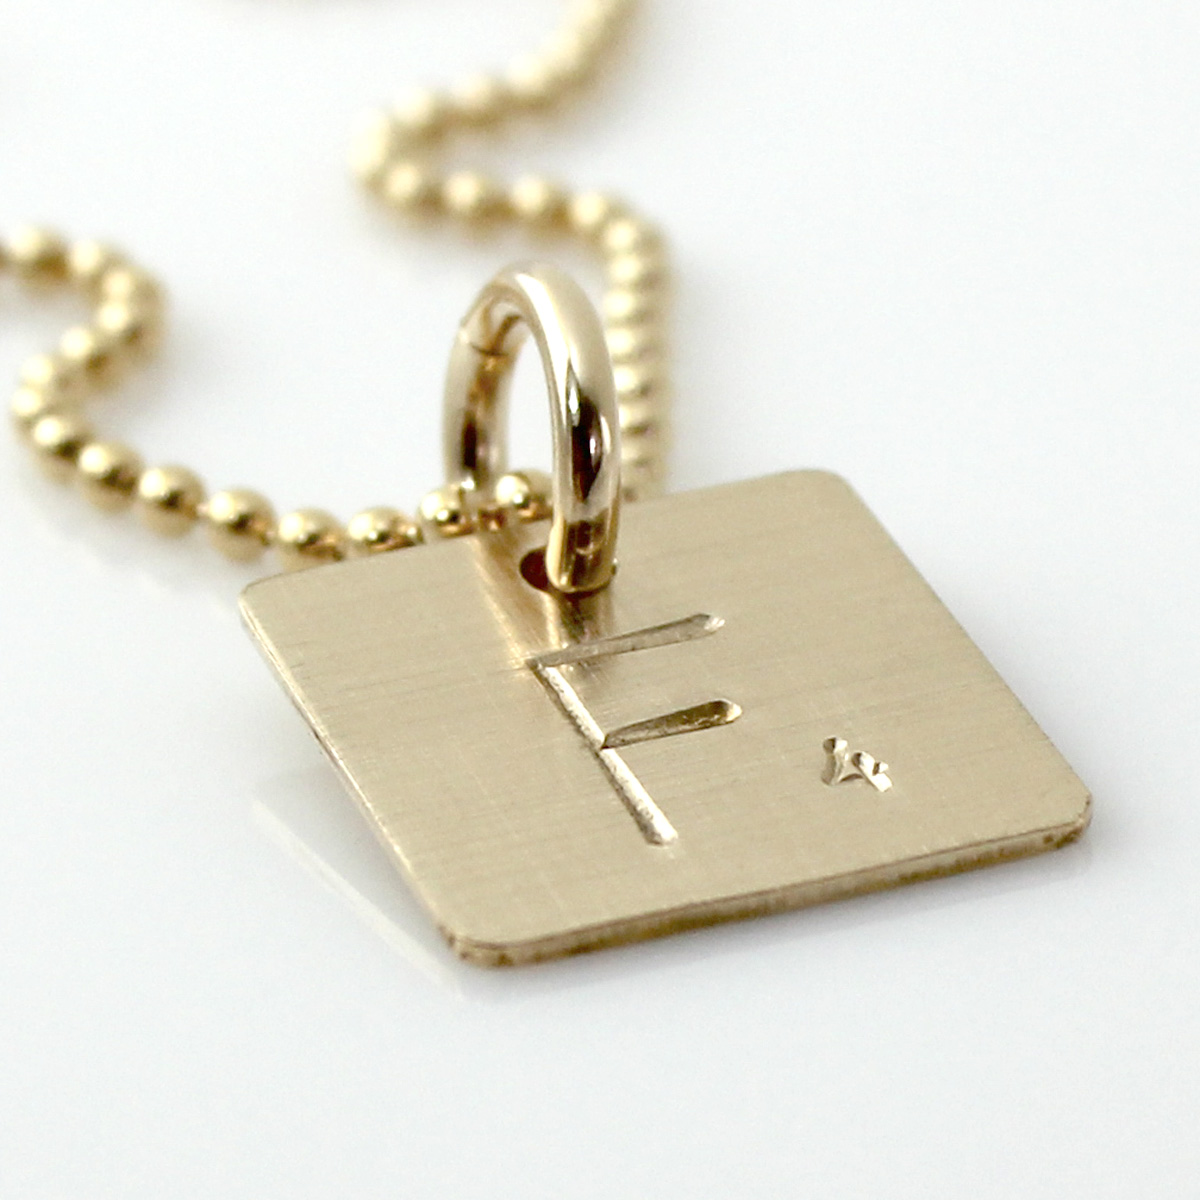 Scrabble Tile Inspired Hand Stamped Necklace in Gold Filled